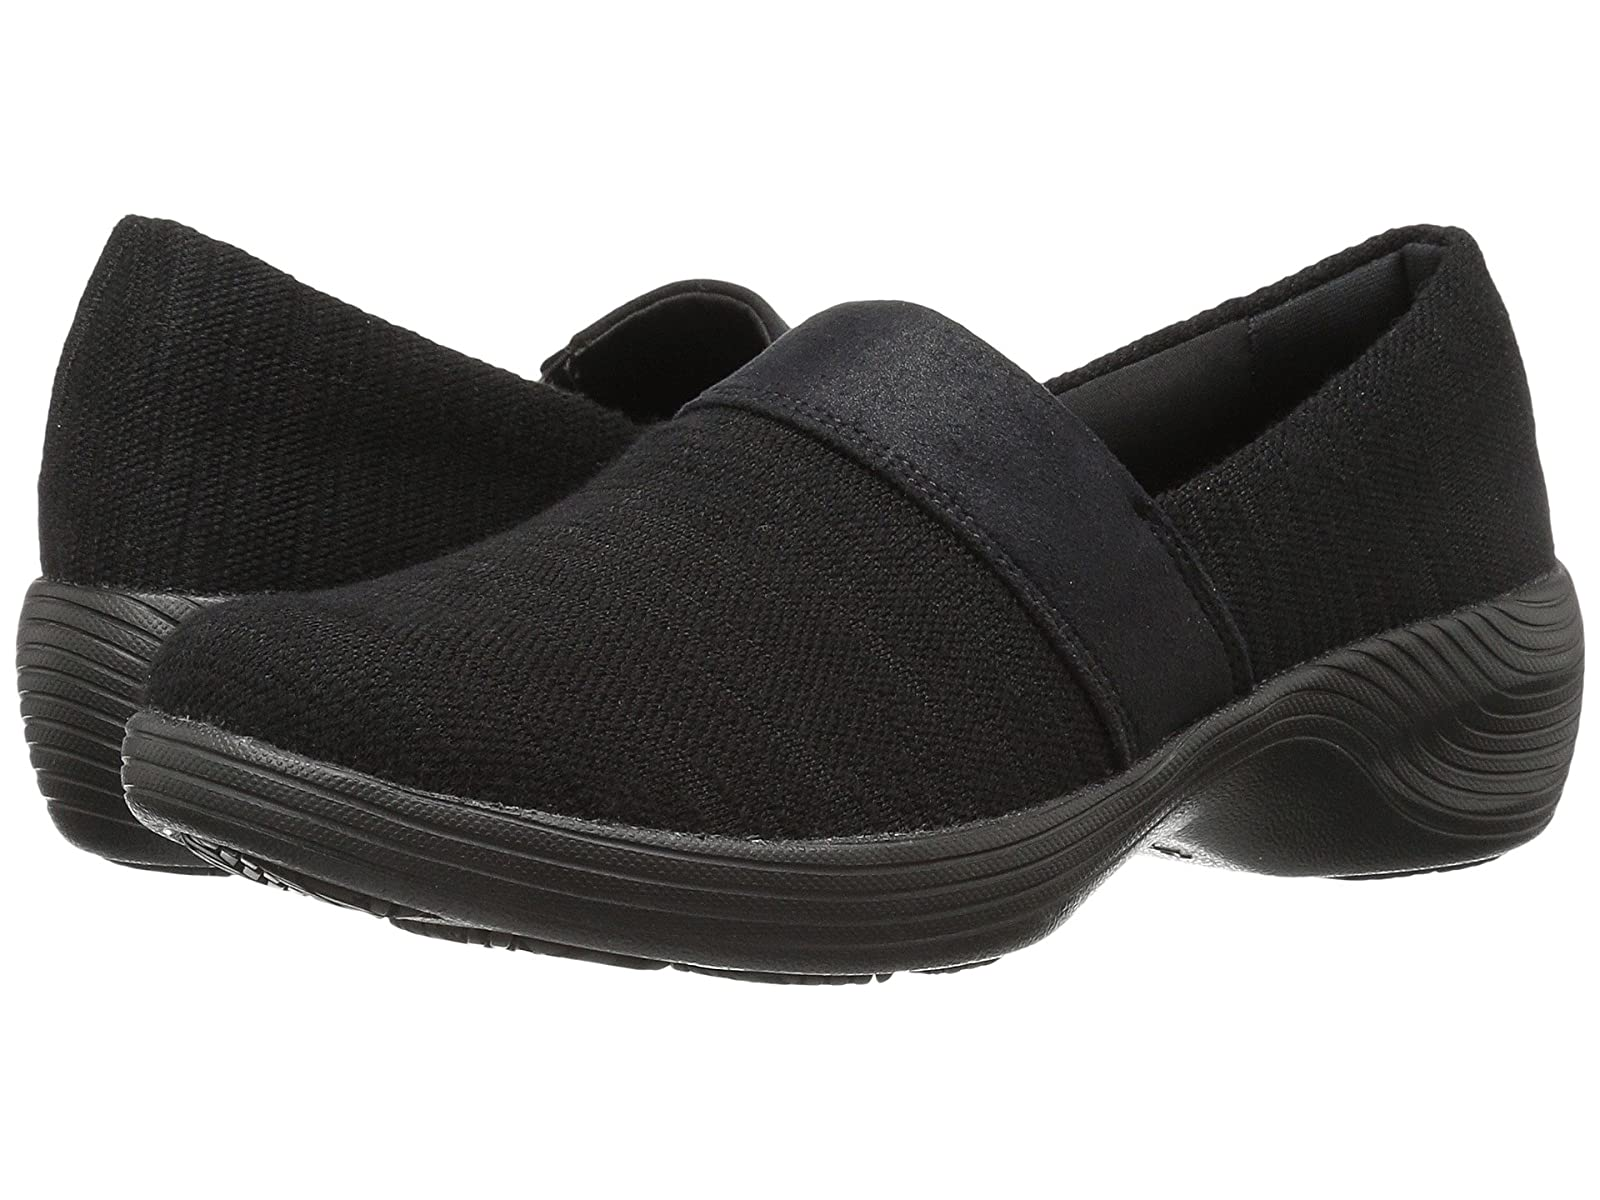 SKECHERS Gemma - Space TripCheap and distinctive eye-catching shoes